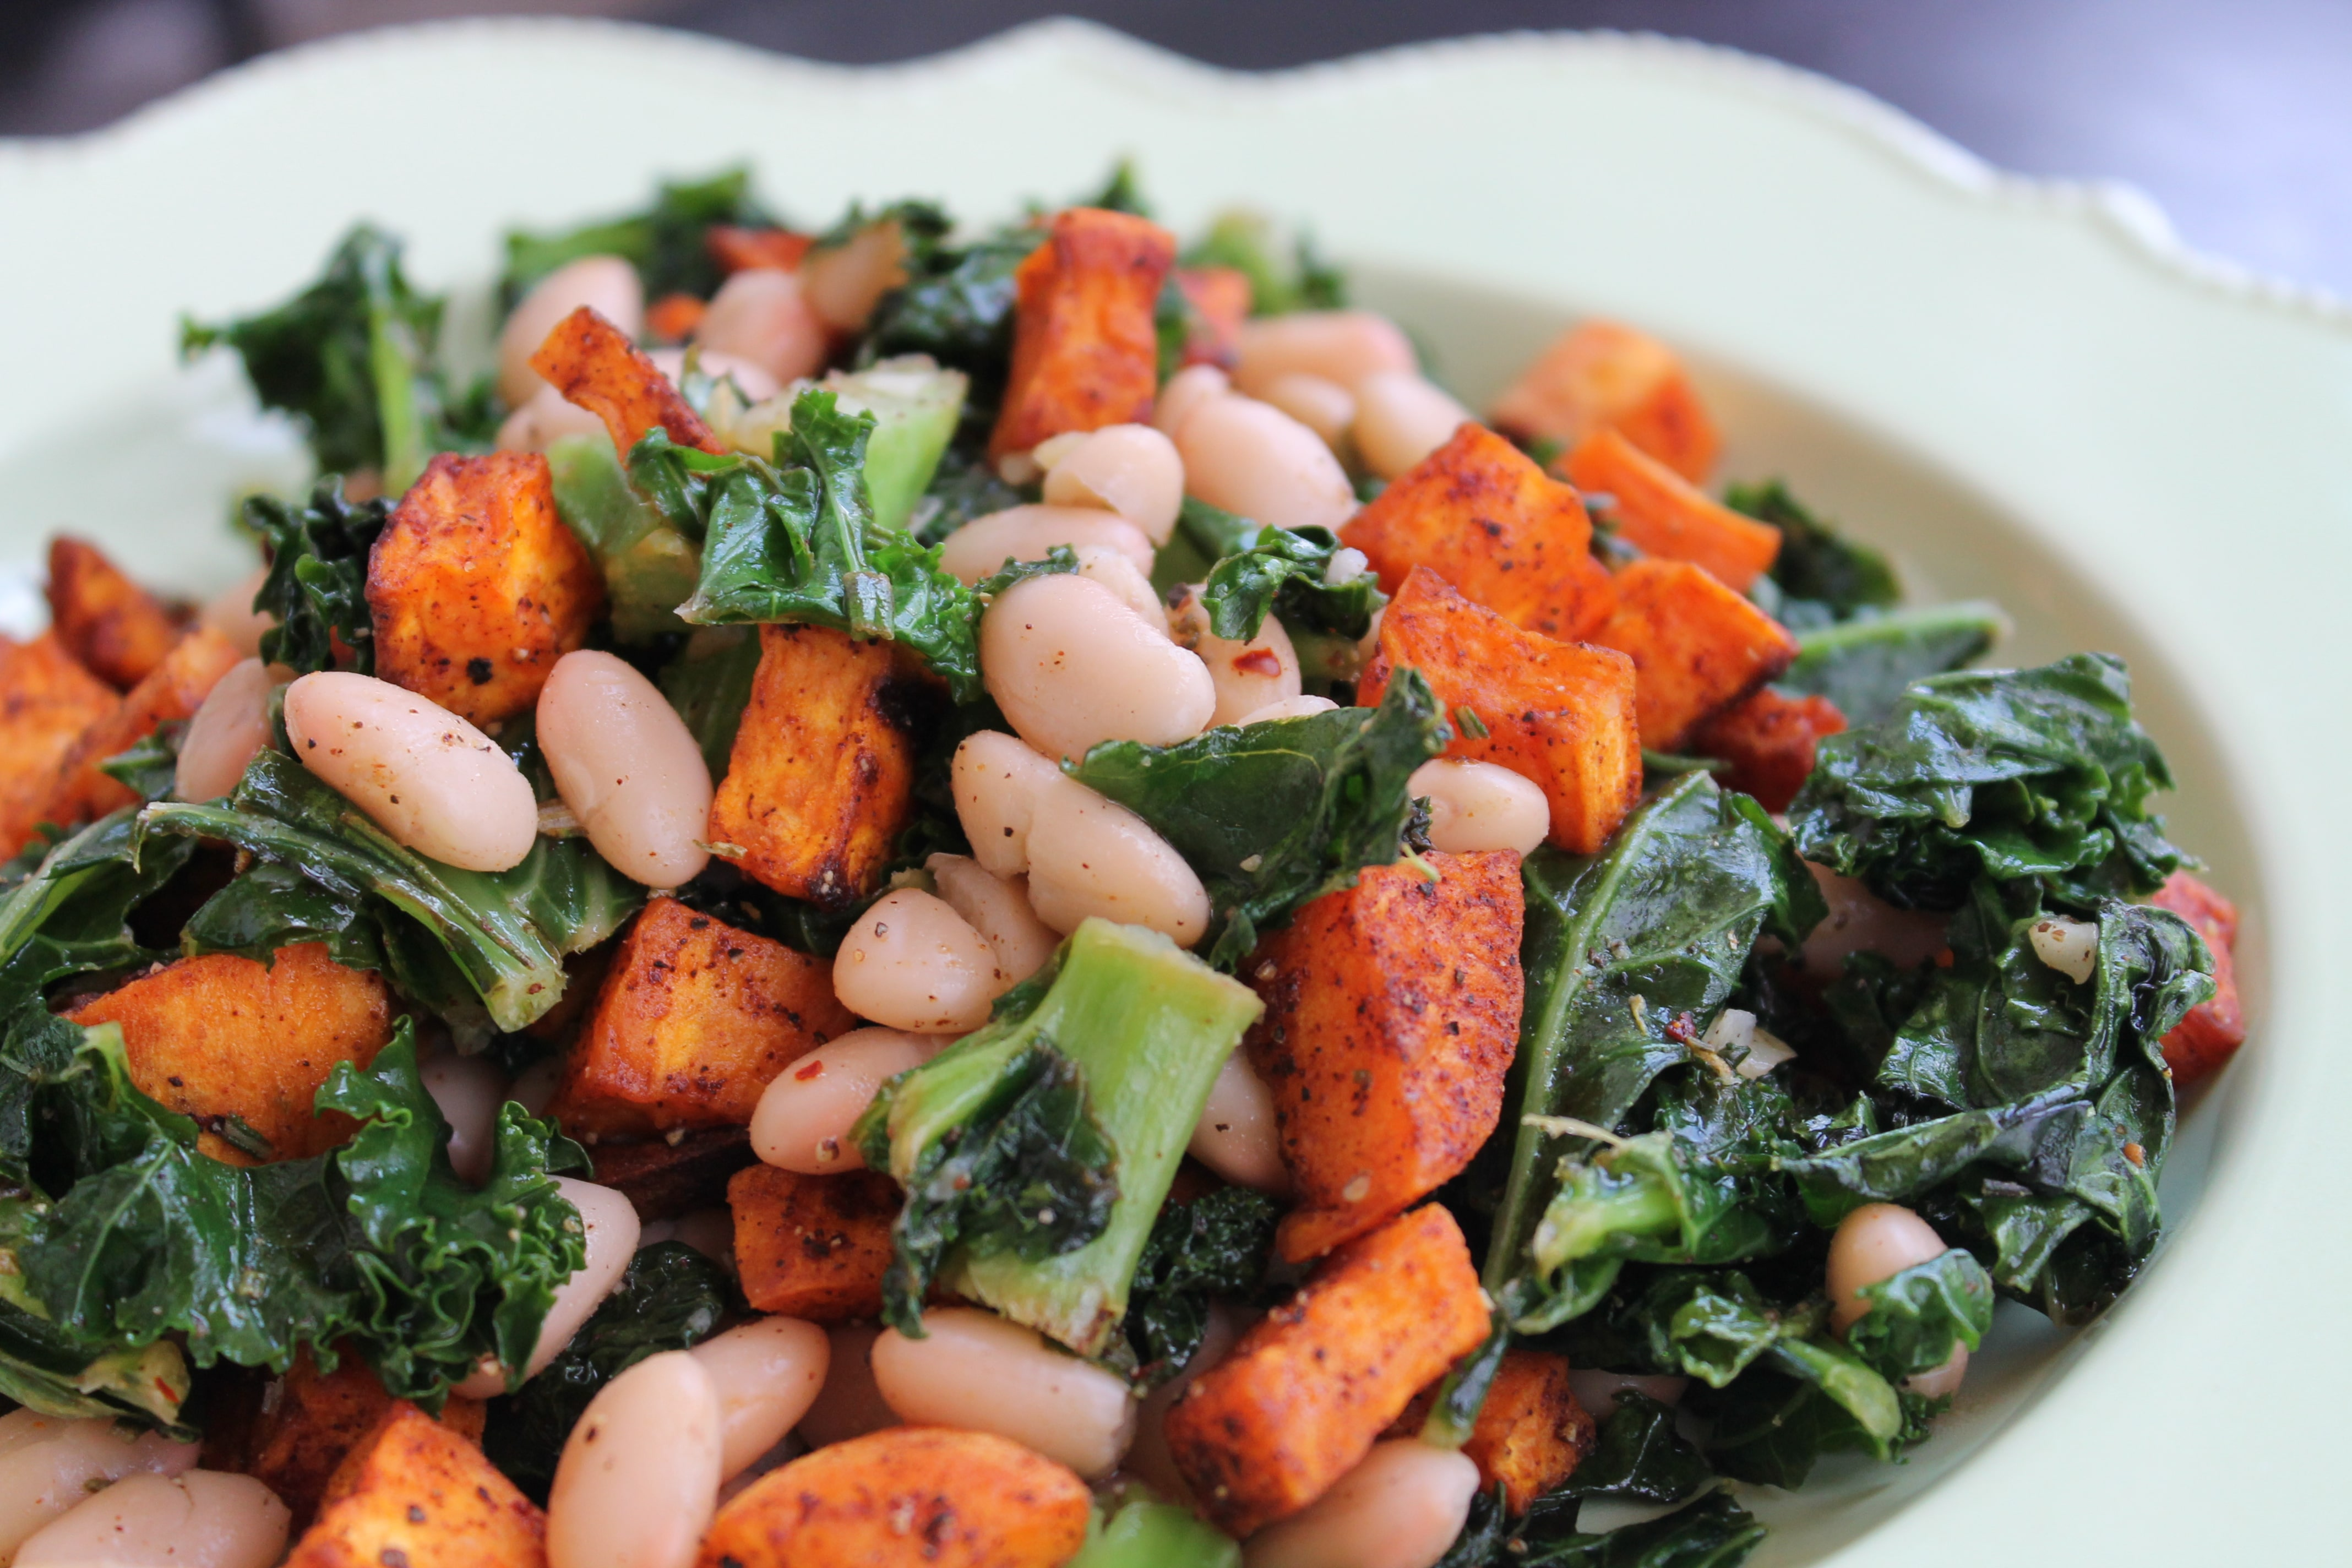 Warm Kale and White Bean Salad with Roasted Sweet Potatoes